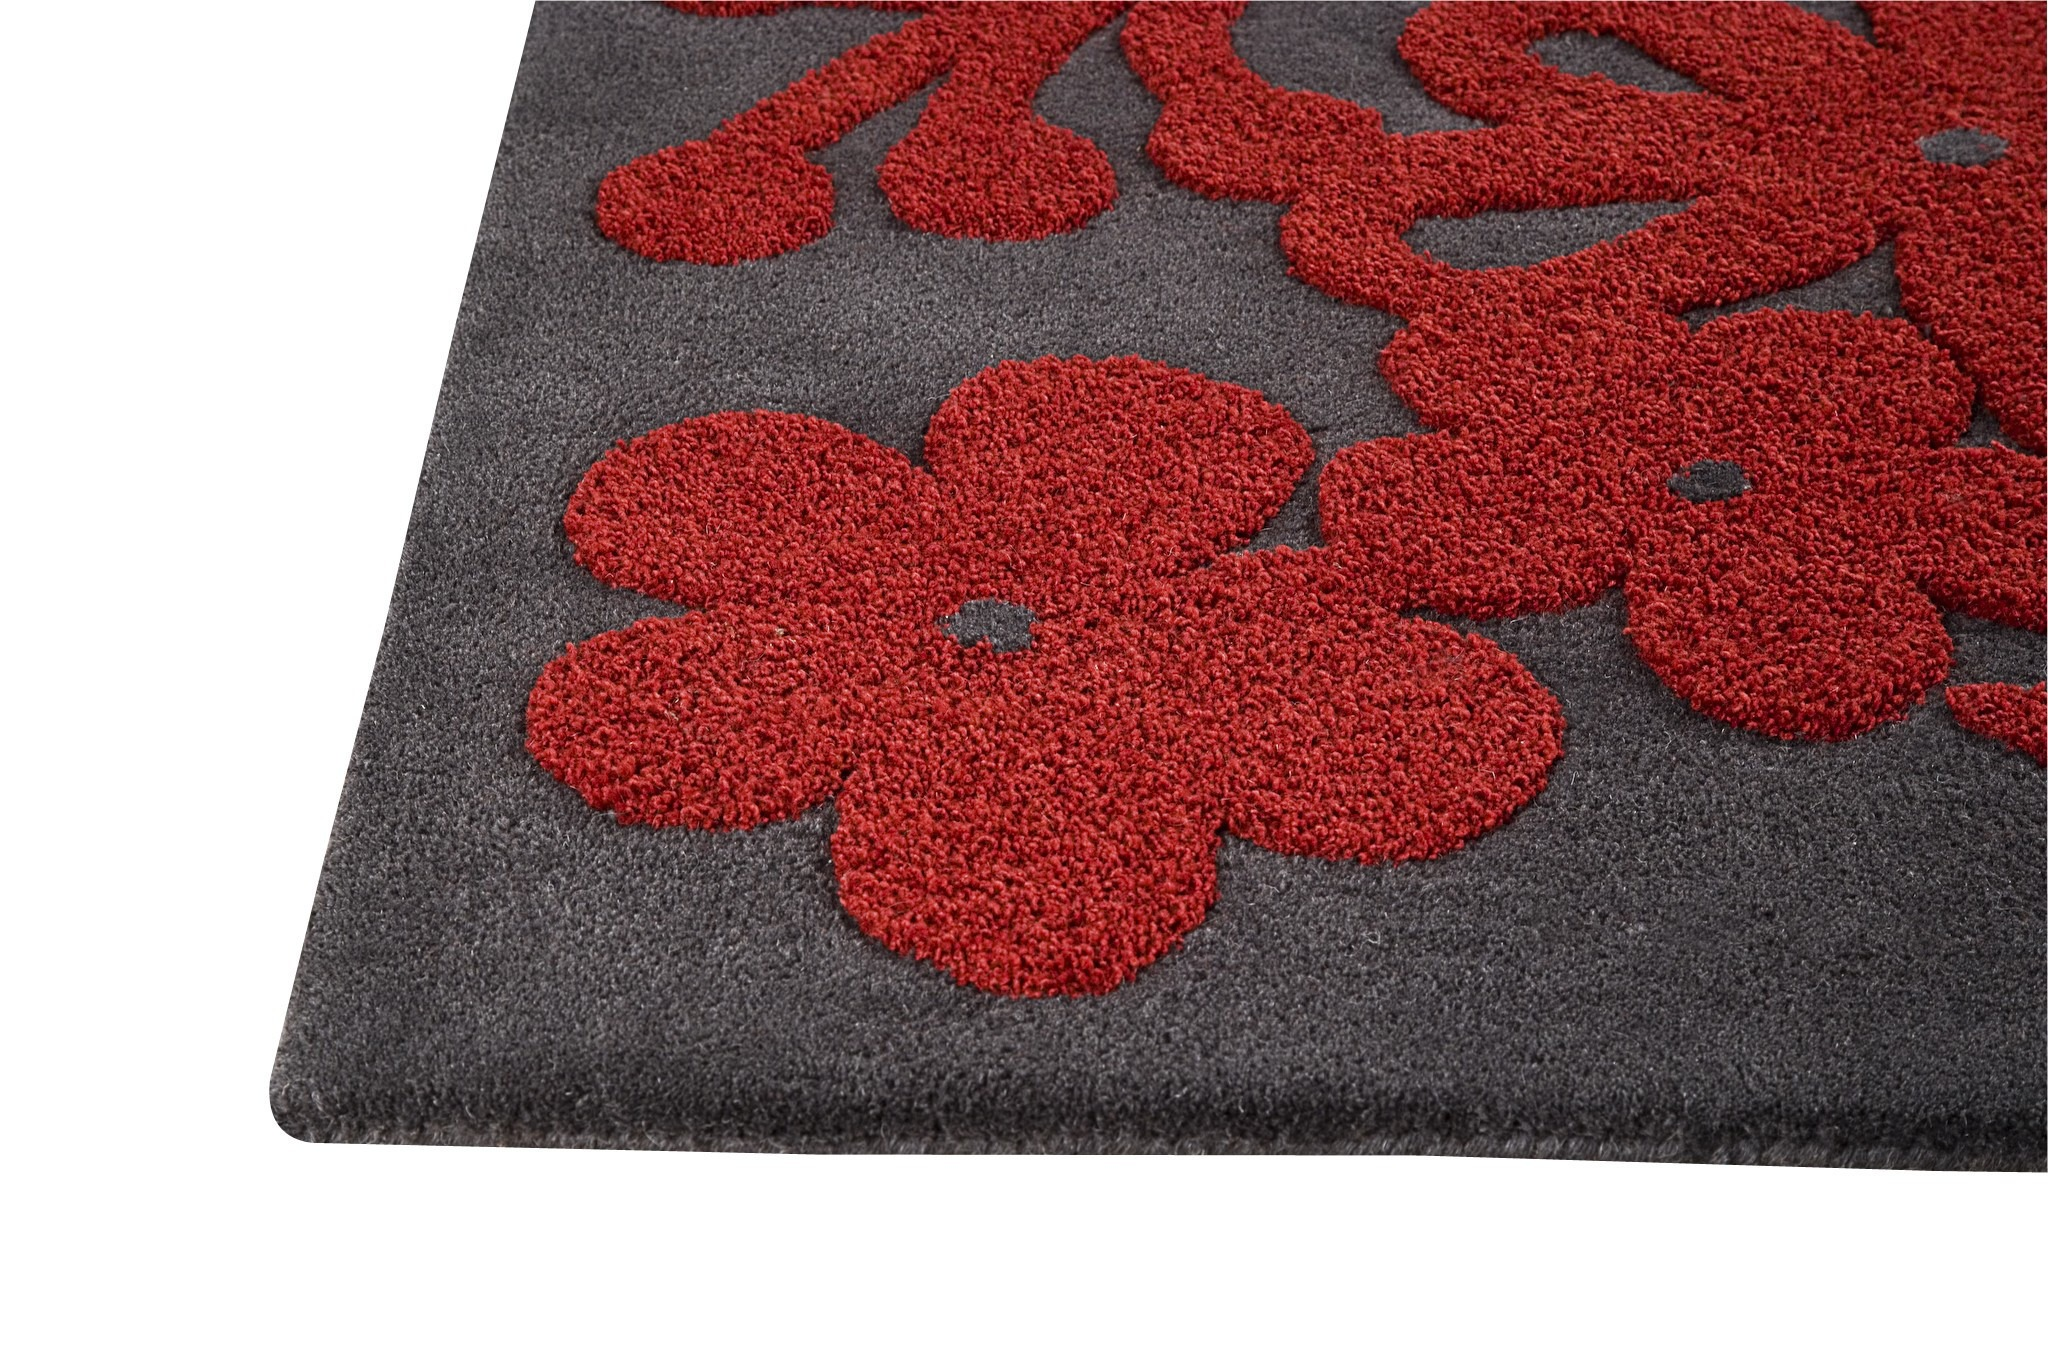 Buy Hand Tufted Rugs Dubai Abu Dhabi Across Uae Carpets